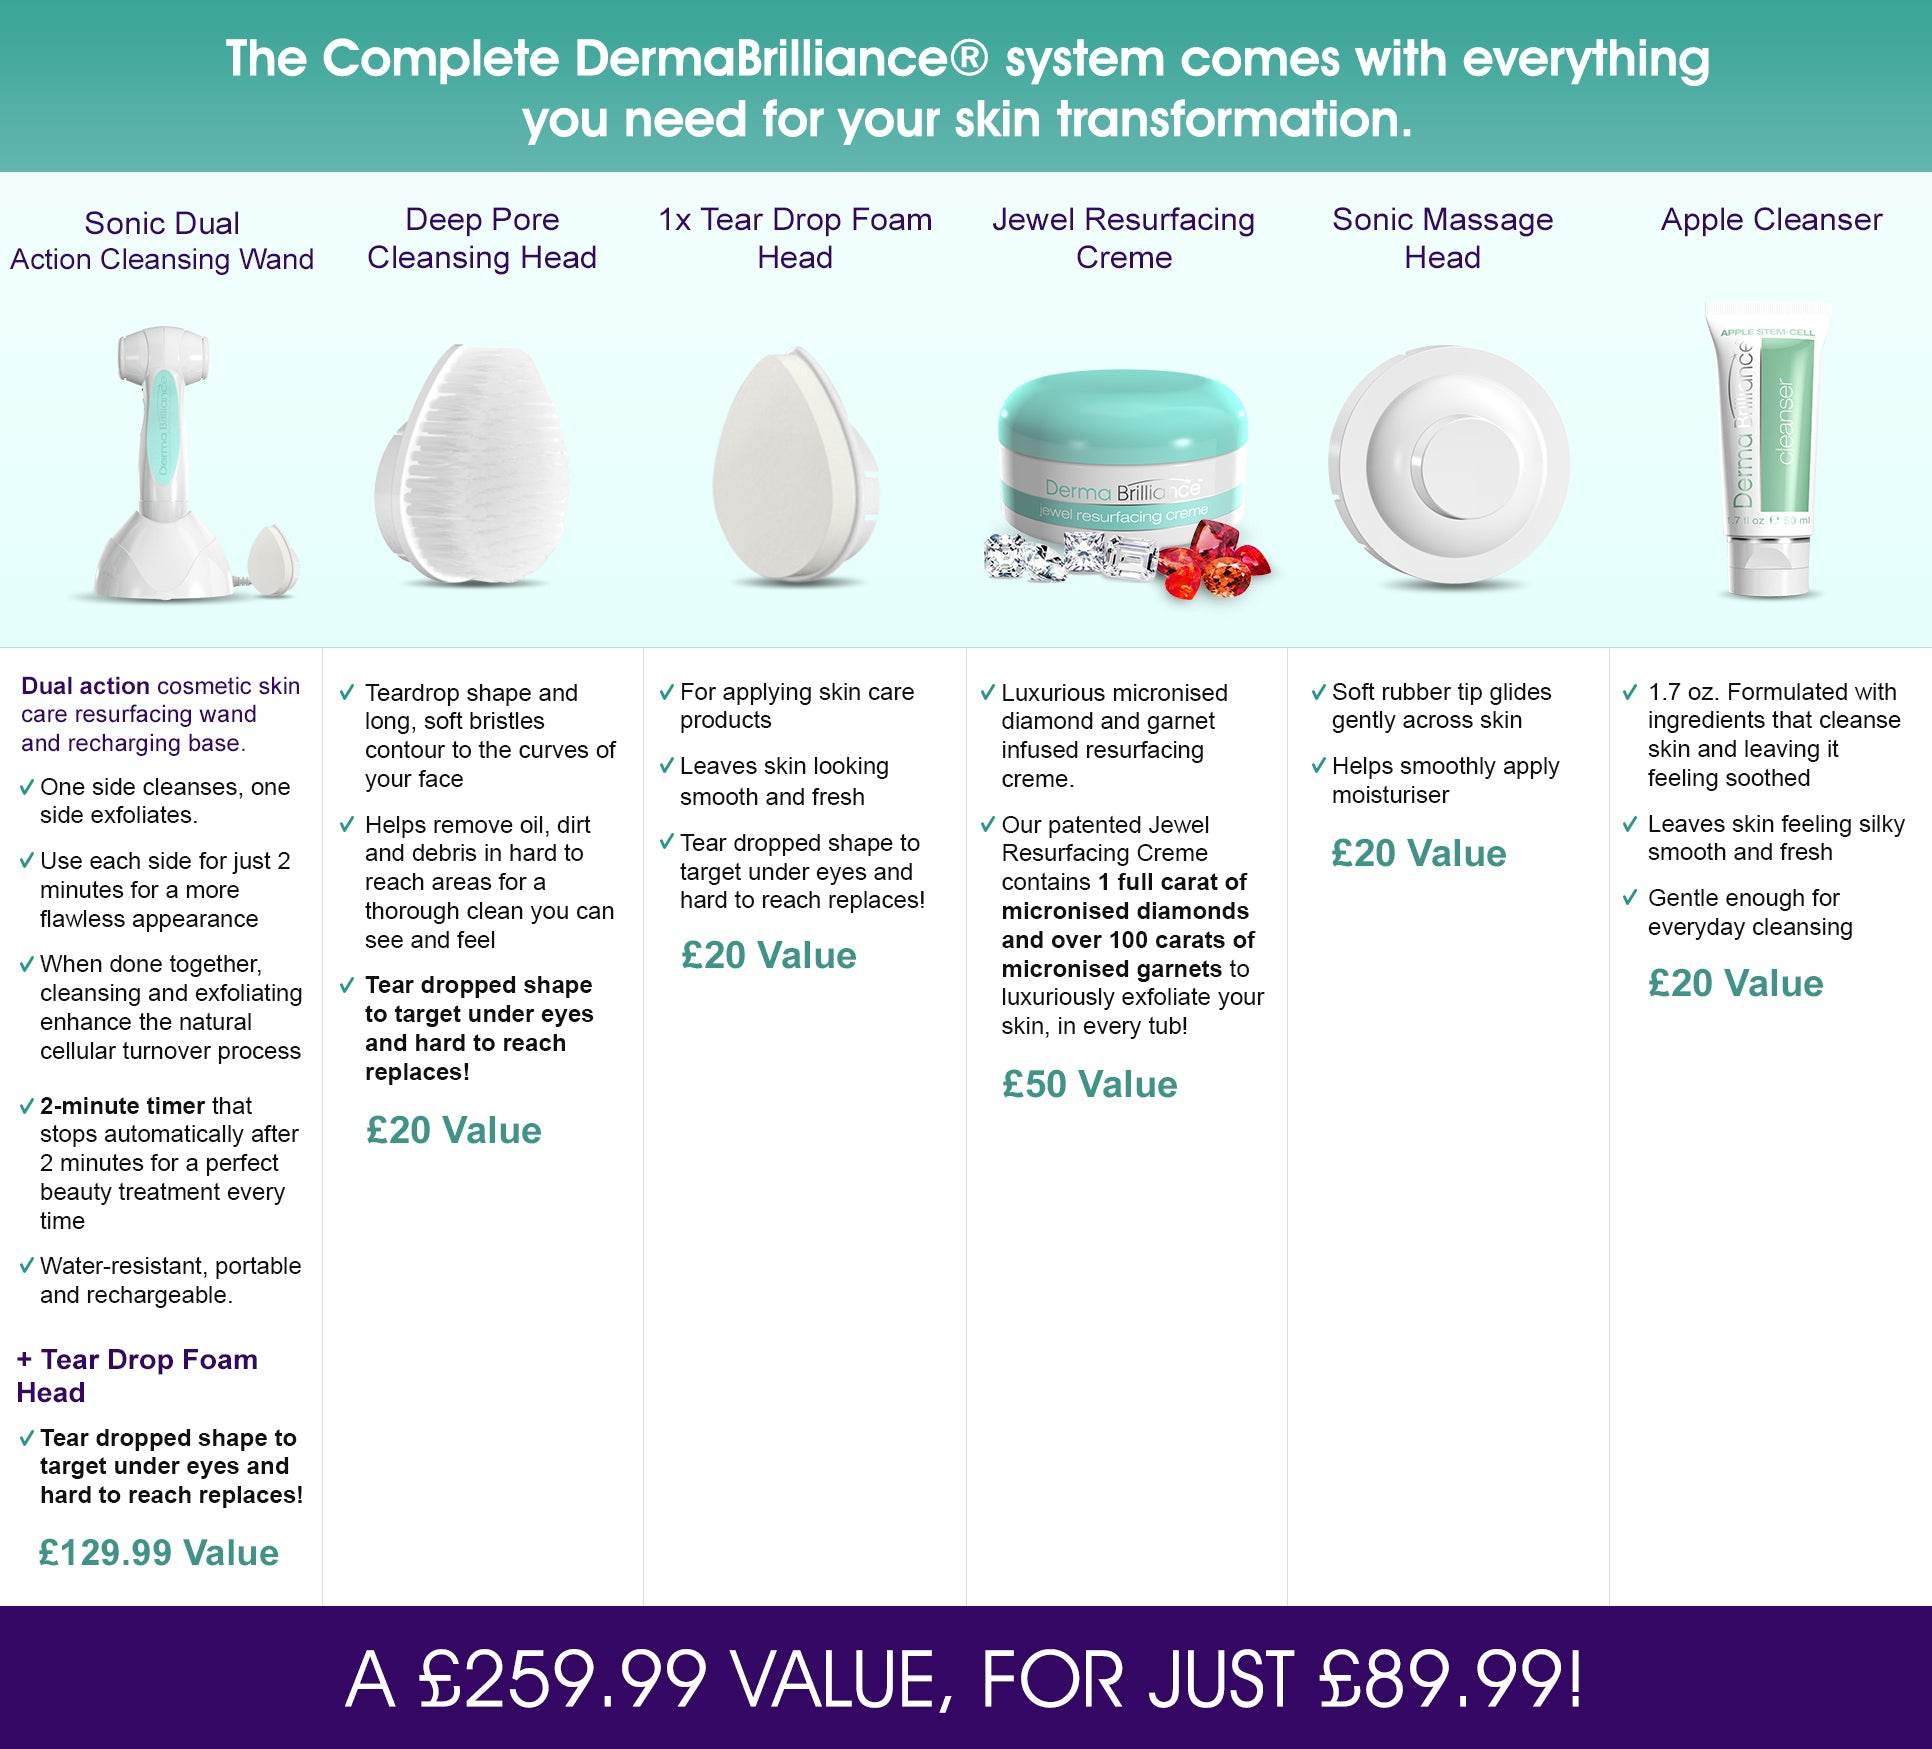 DermaBrilliance Sonic Cleansing and Exfoliation System